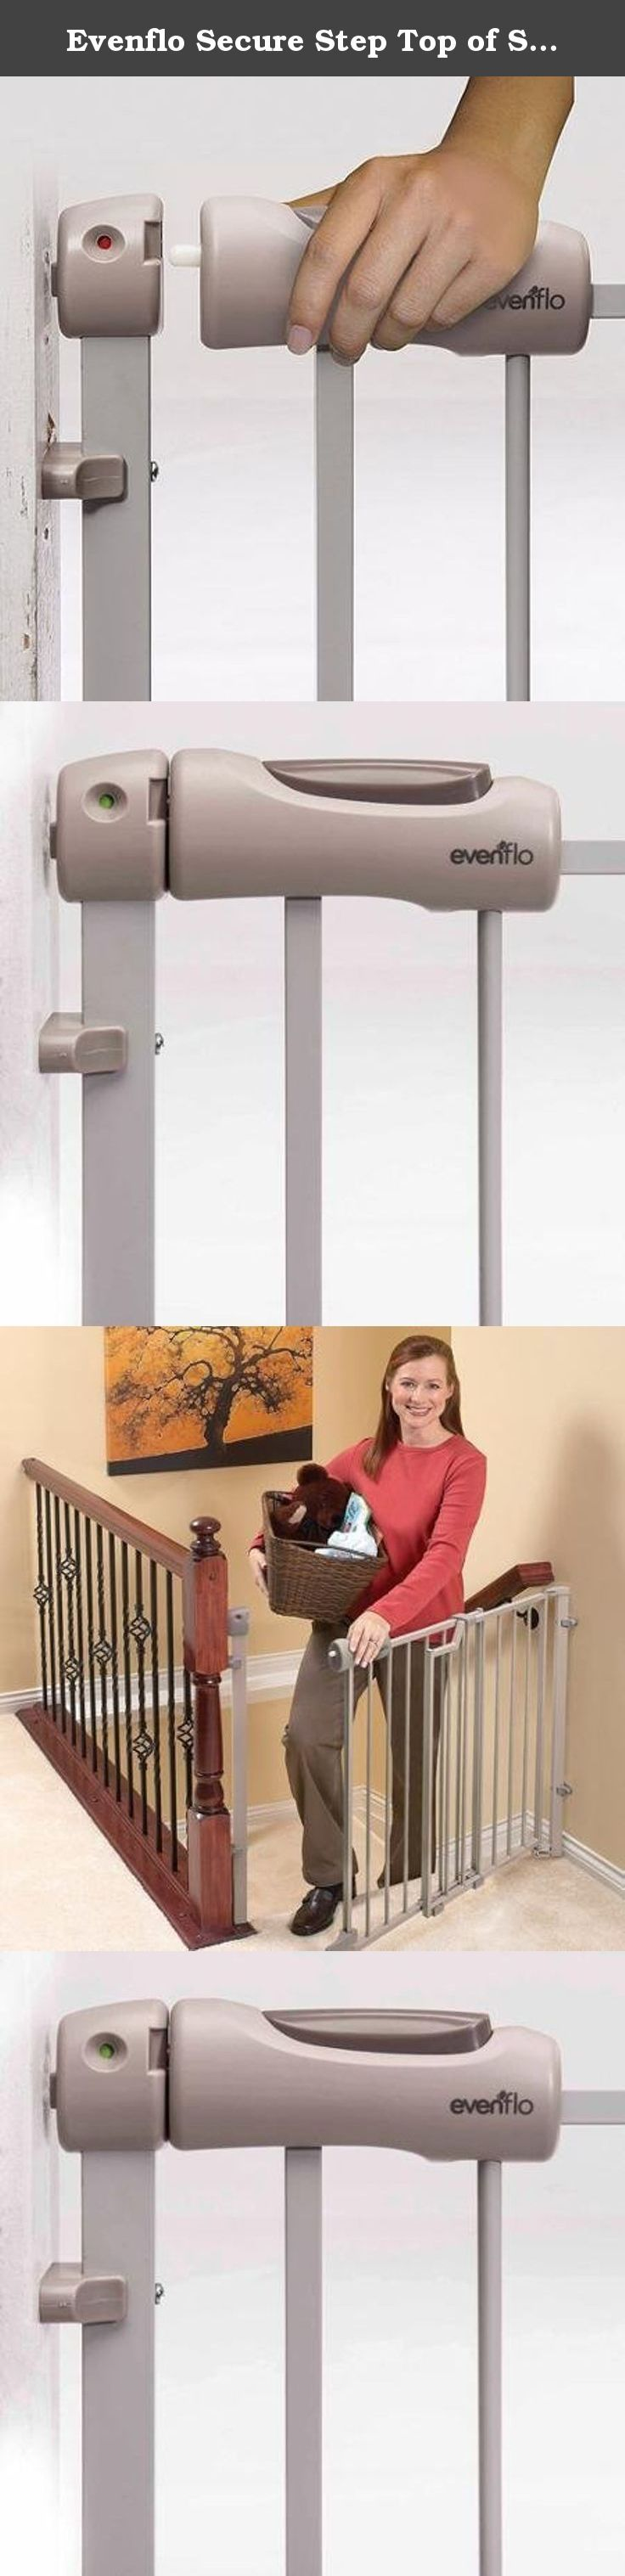 1000 Ideas About Stair Gate On Pinterest Pet Gate Baby